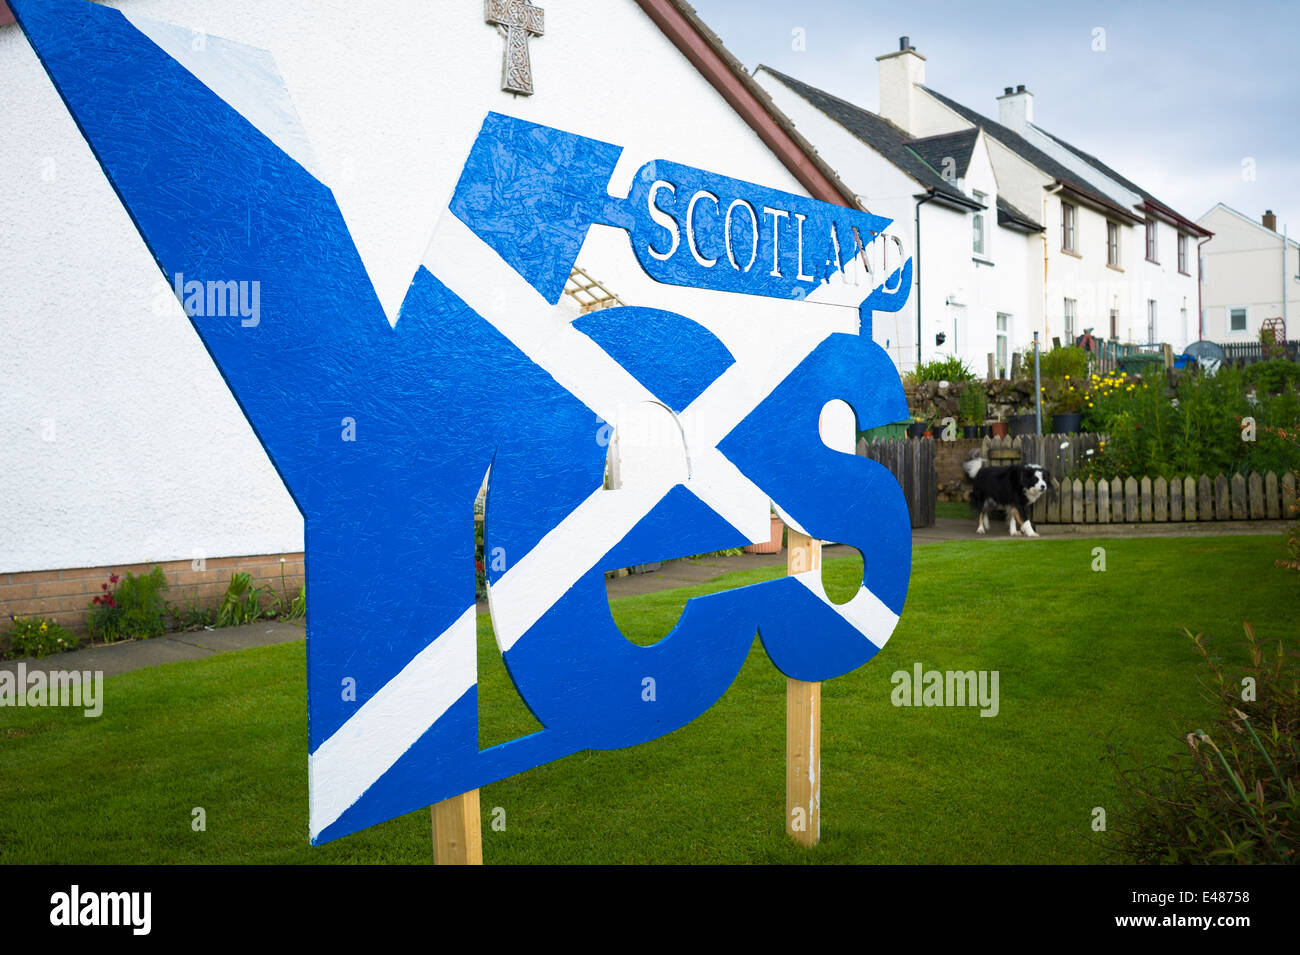 Saltire national flag of St Andrew, Scottish Independence Referendum Debate campaign for YES vote for separate SCOTLAND - Stock Image